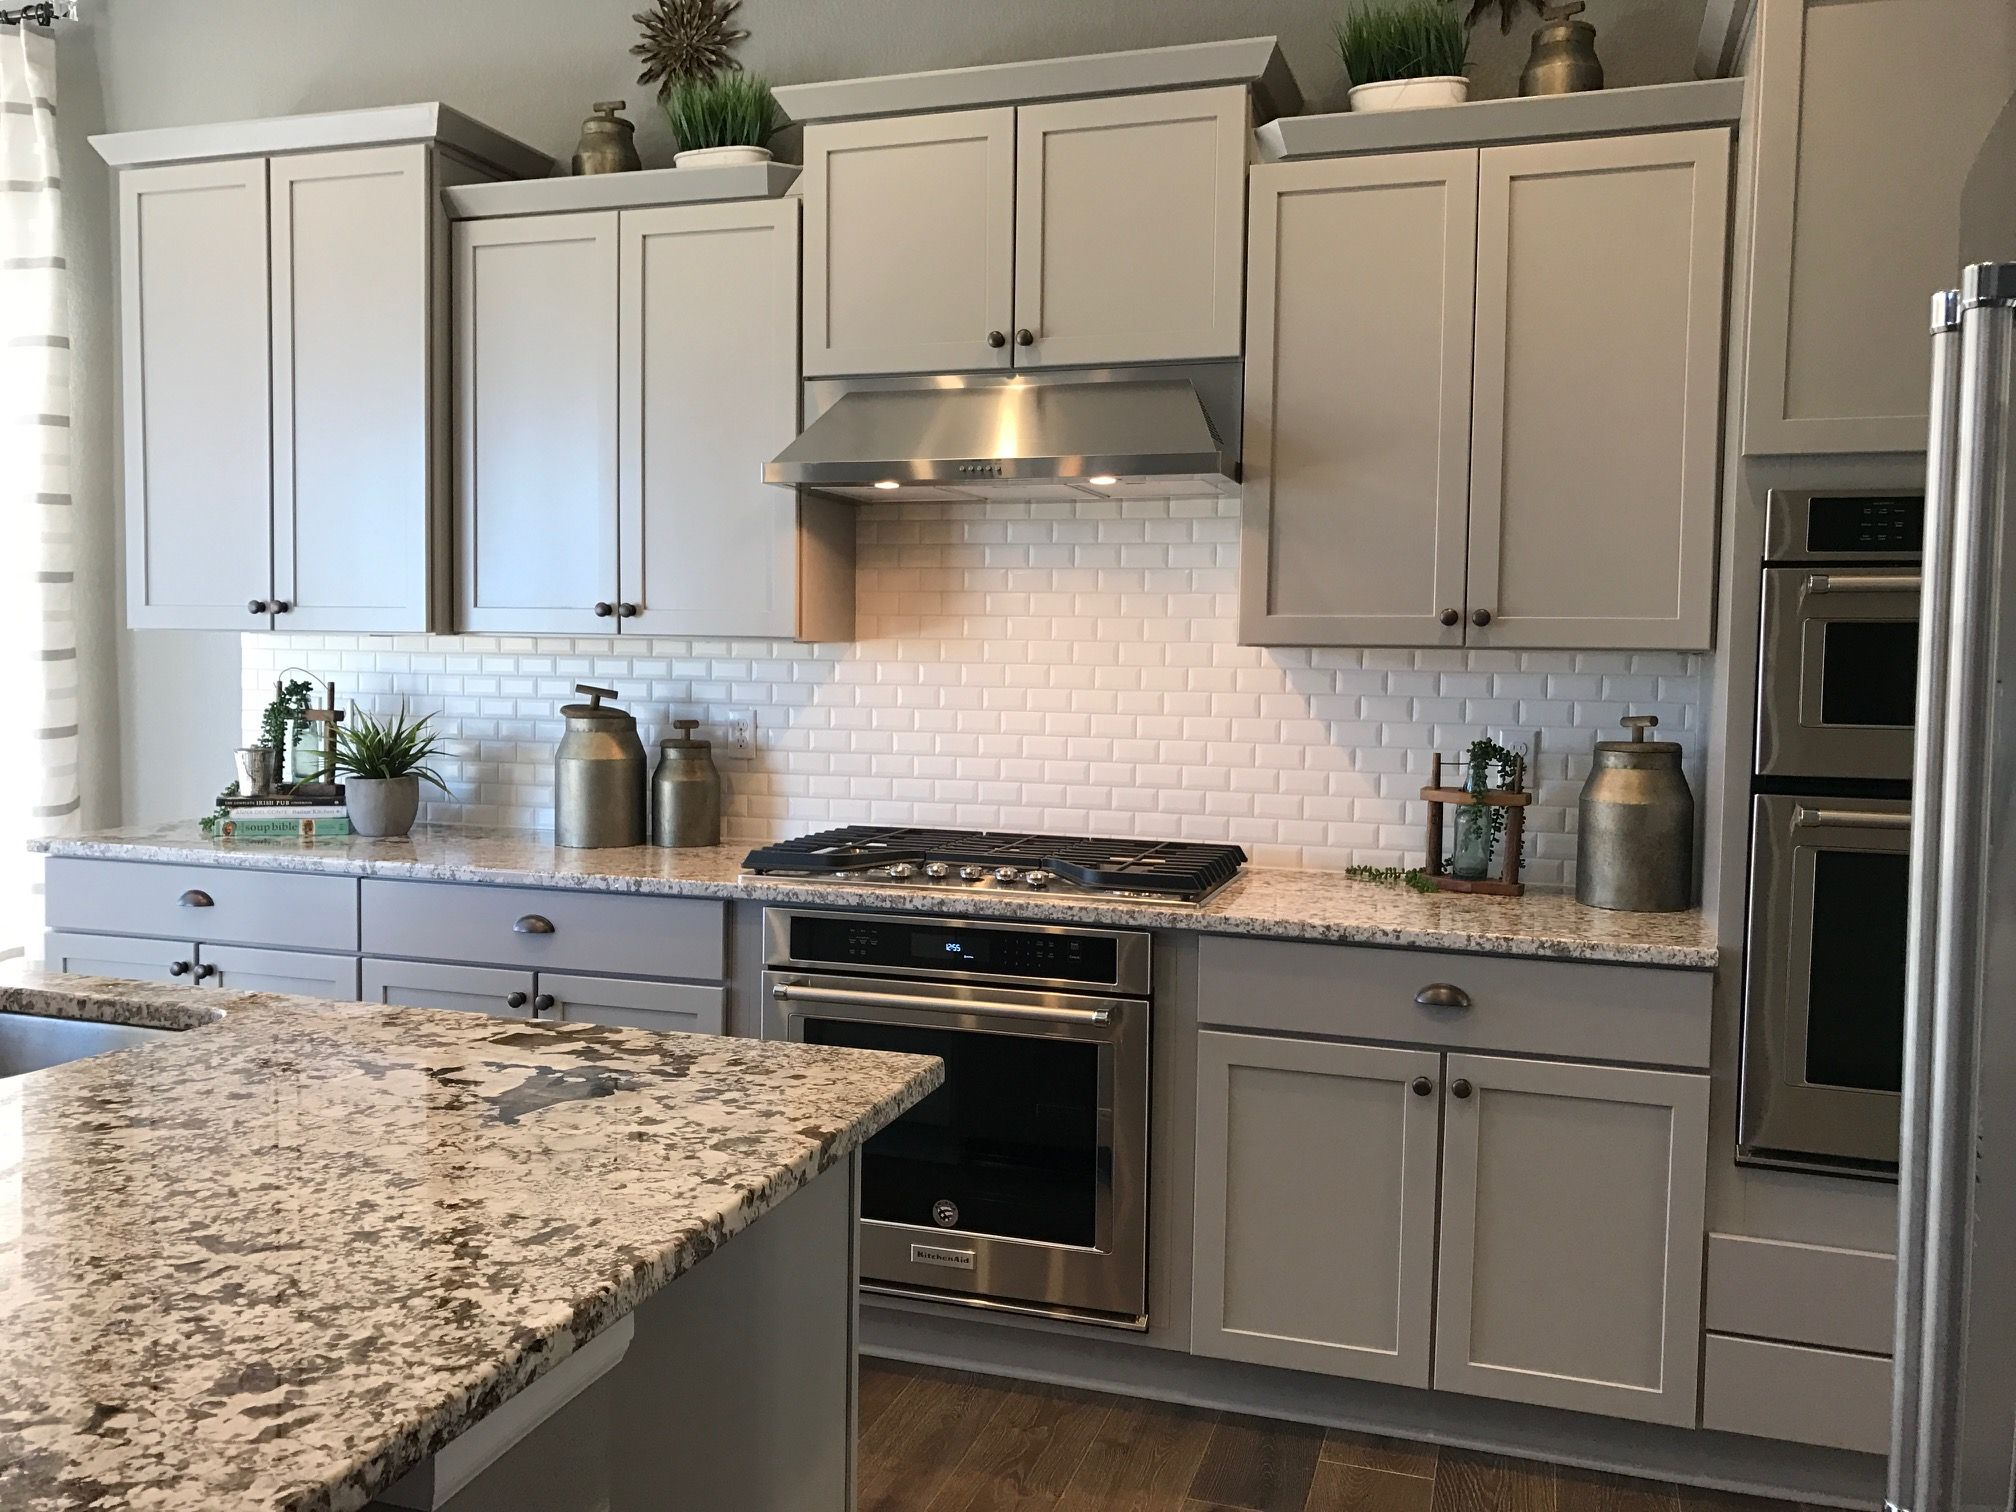 Merillat Portrait Style Shale Color Cabinets With Bianco Antico Granite And Vogue 2x4 White Matte Backsp Kitchen Cabinets Prices Rustic Kitchen Kitchen Design